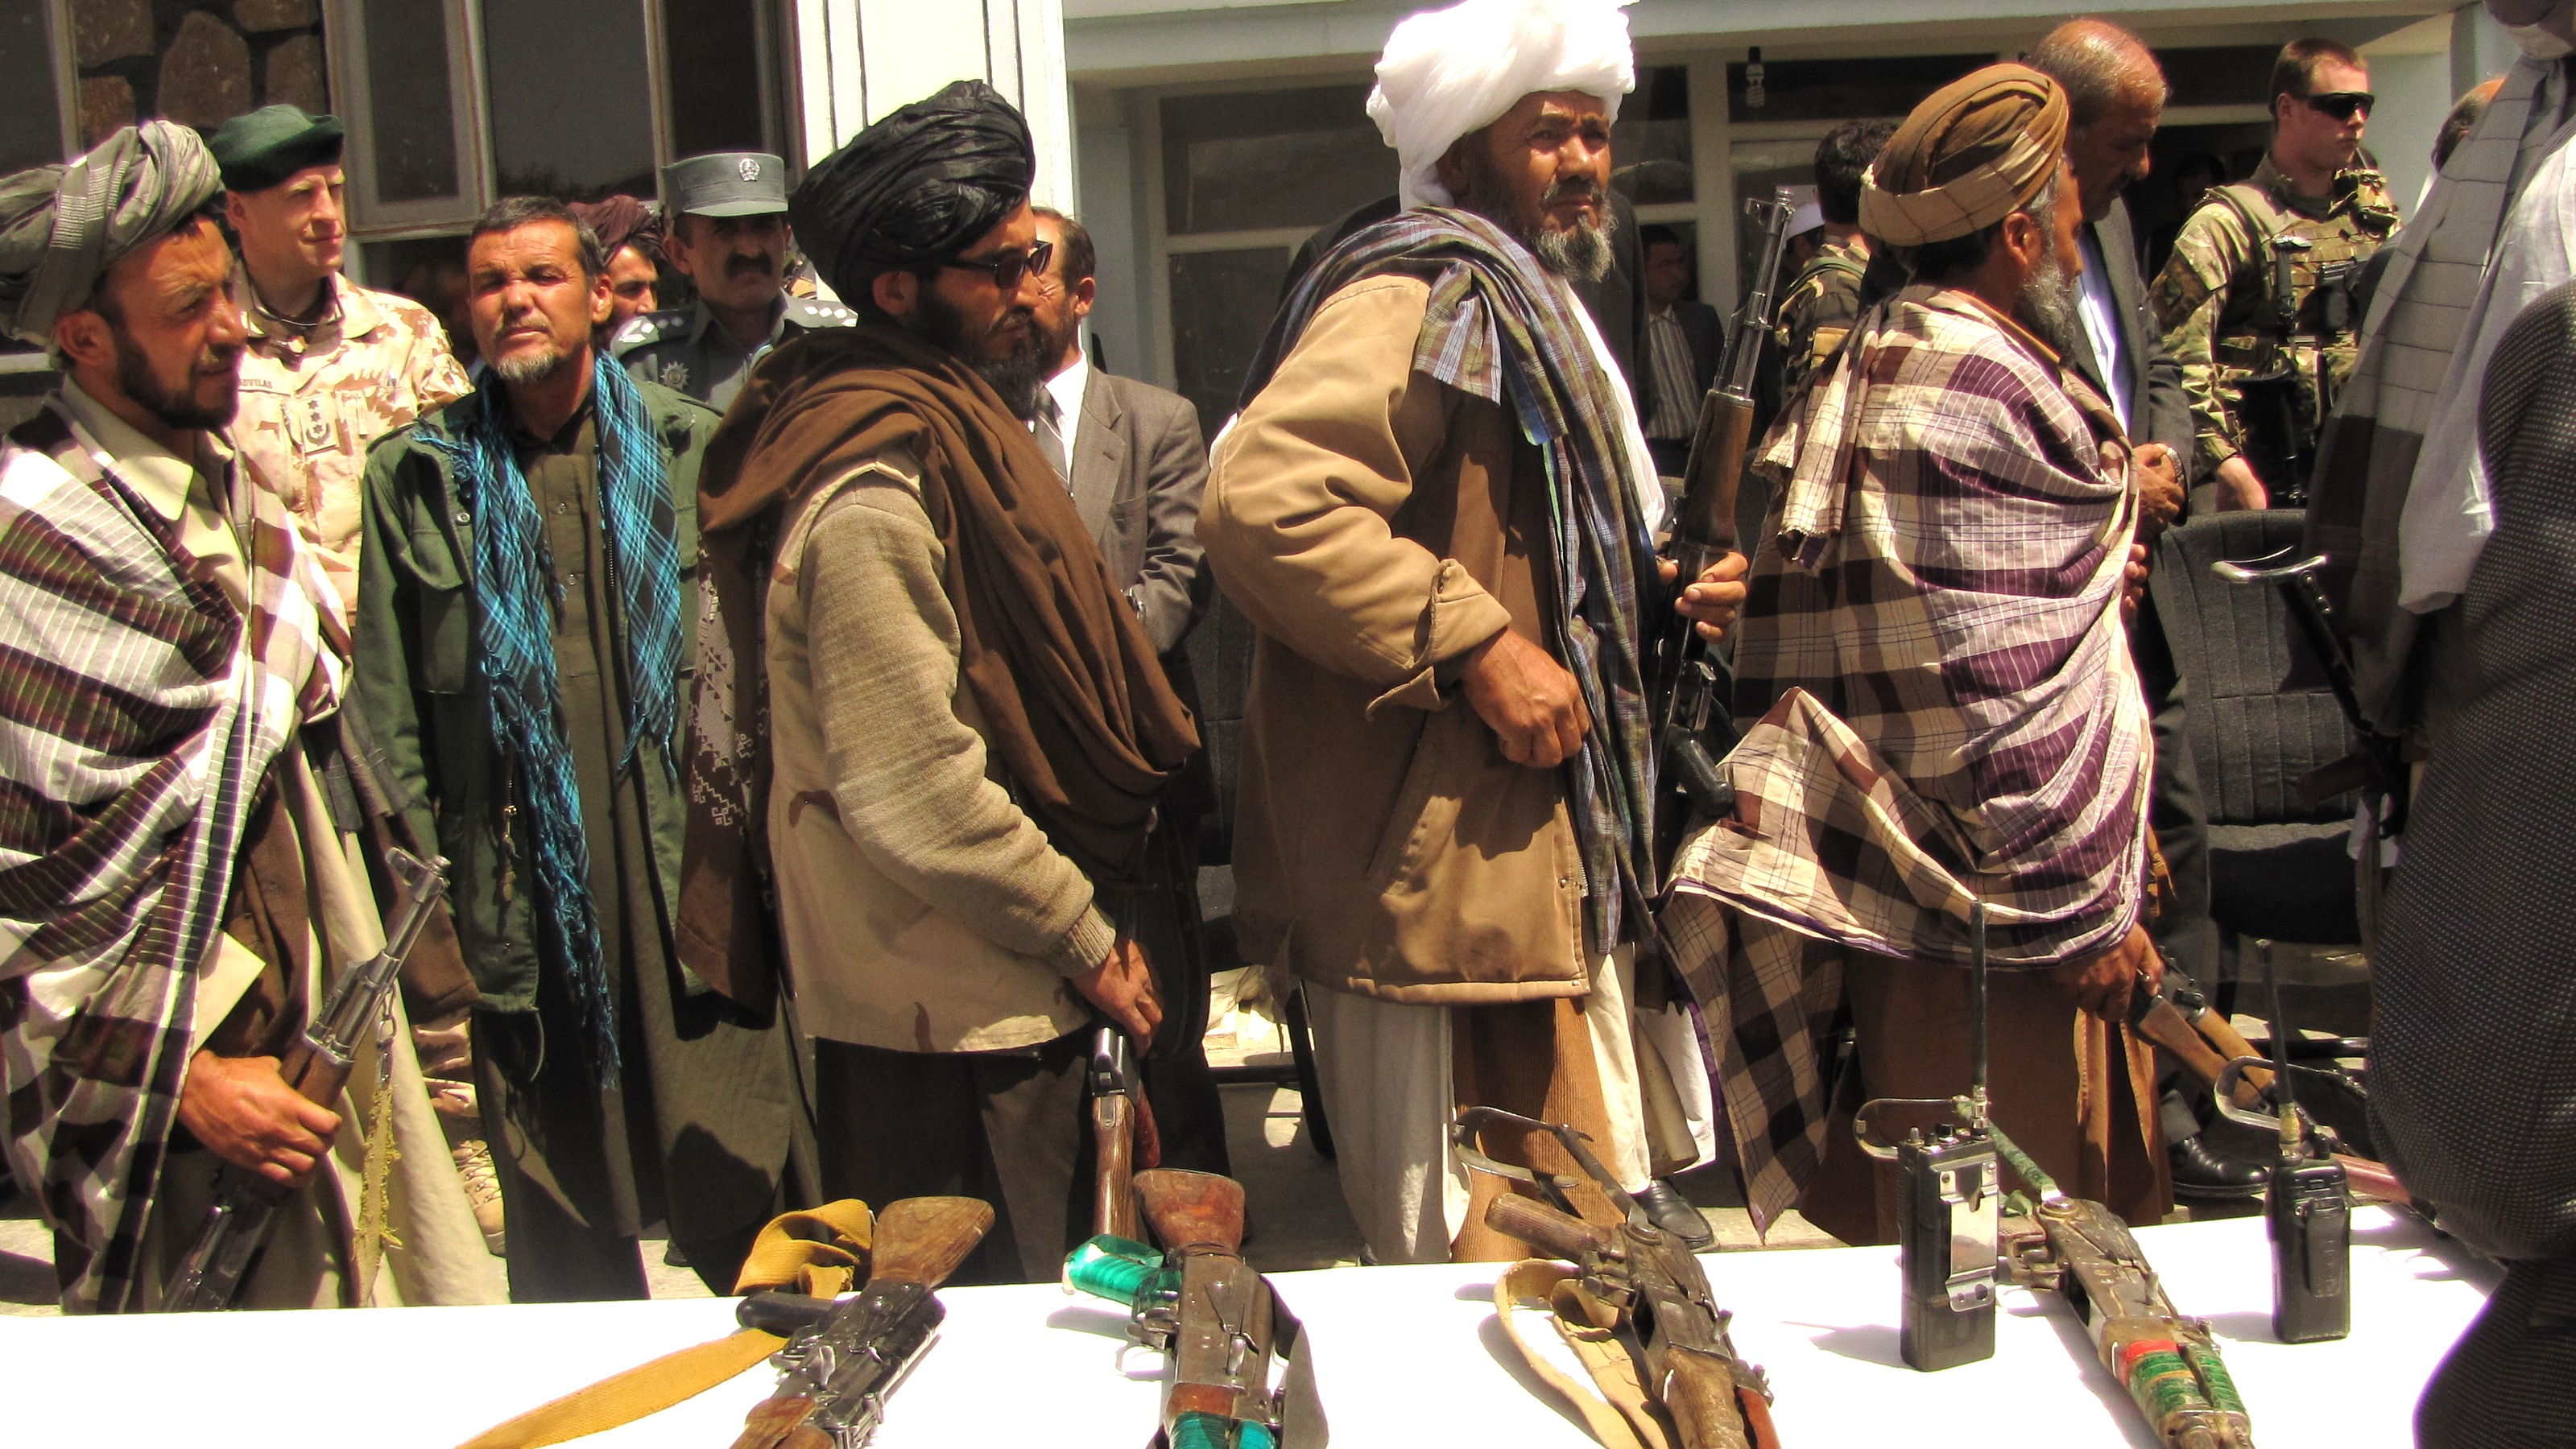 Taliban fghters surrendering and letting go of weapons.